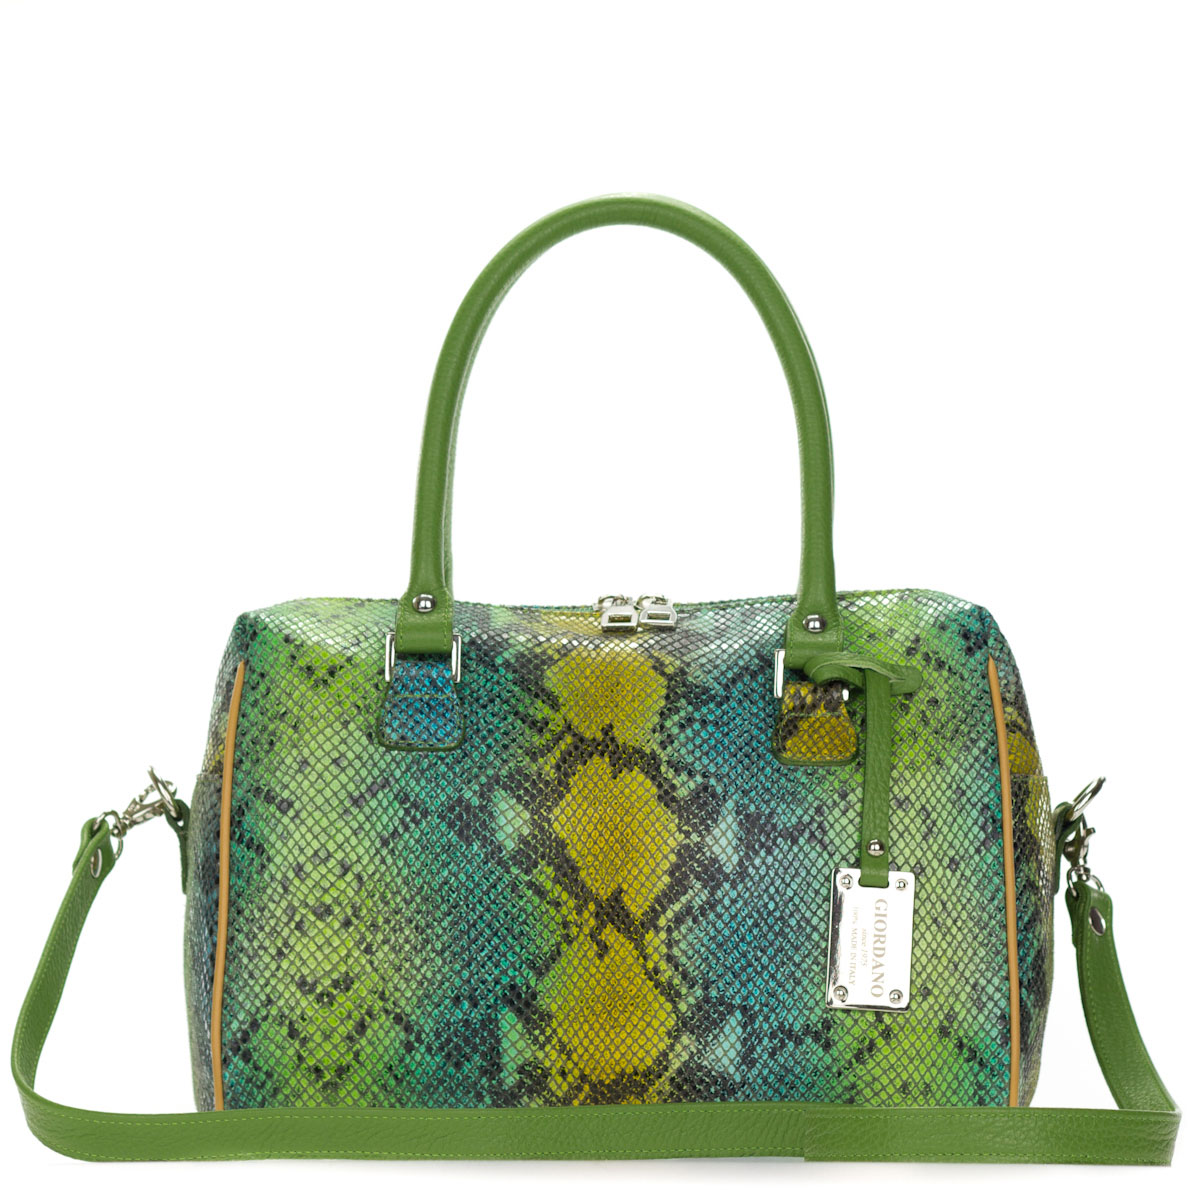 Giordano Italian Made Green Python Embossed Leather Structured Satchel Handbag